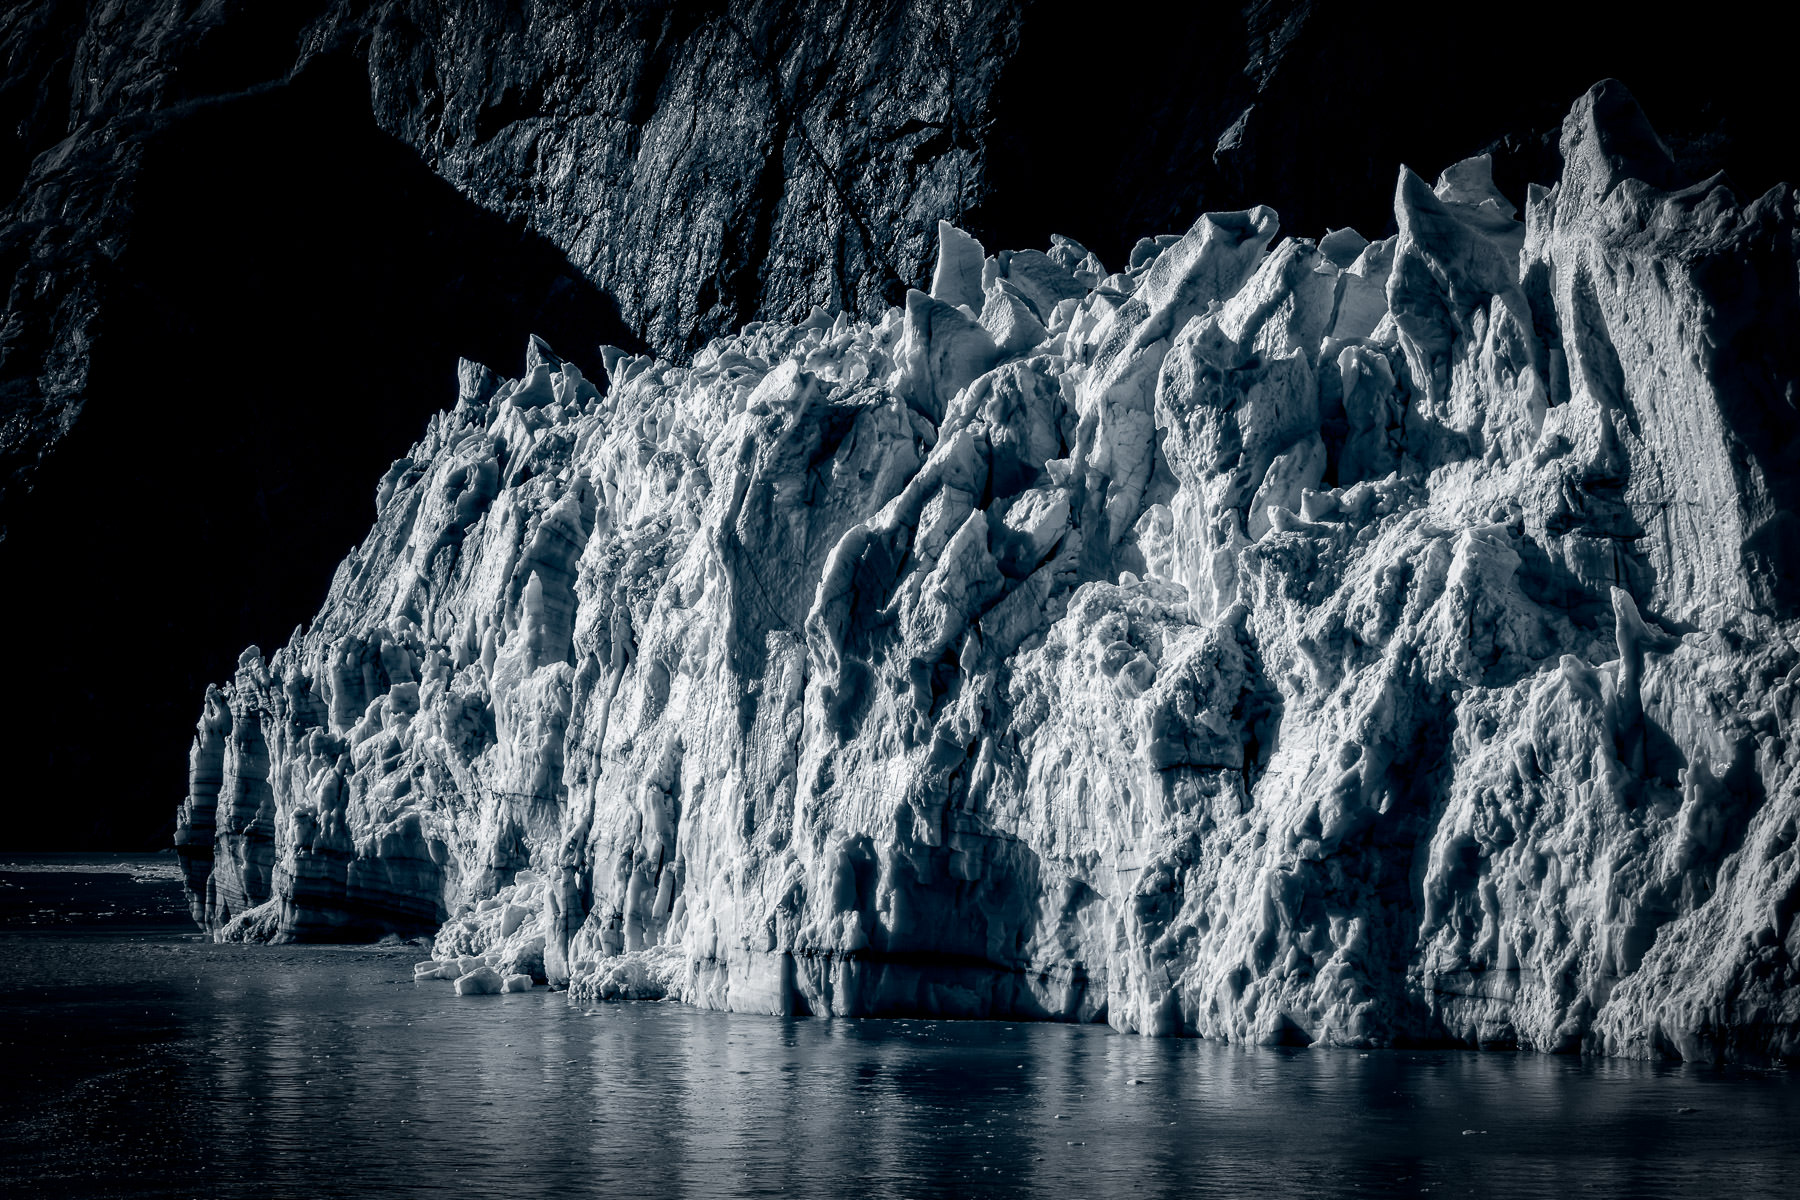 Detail of a jagged glacier spotted in Alaska's Glacier Bay National Park.